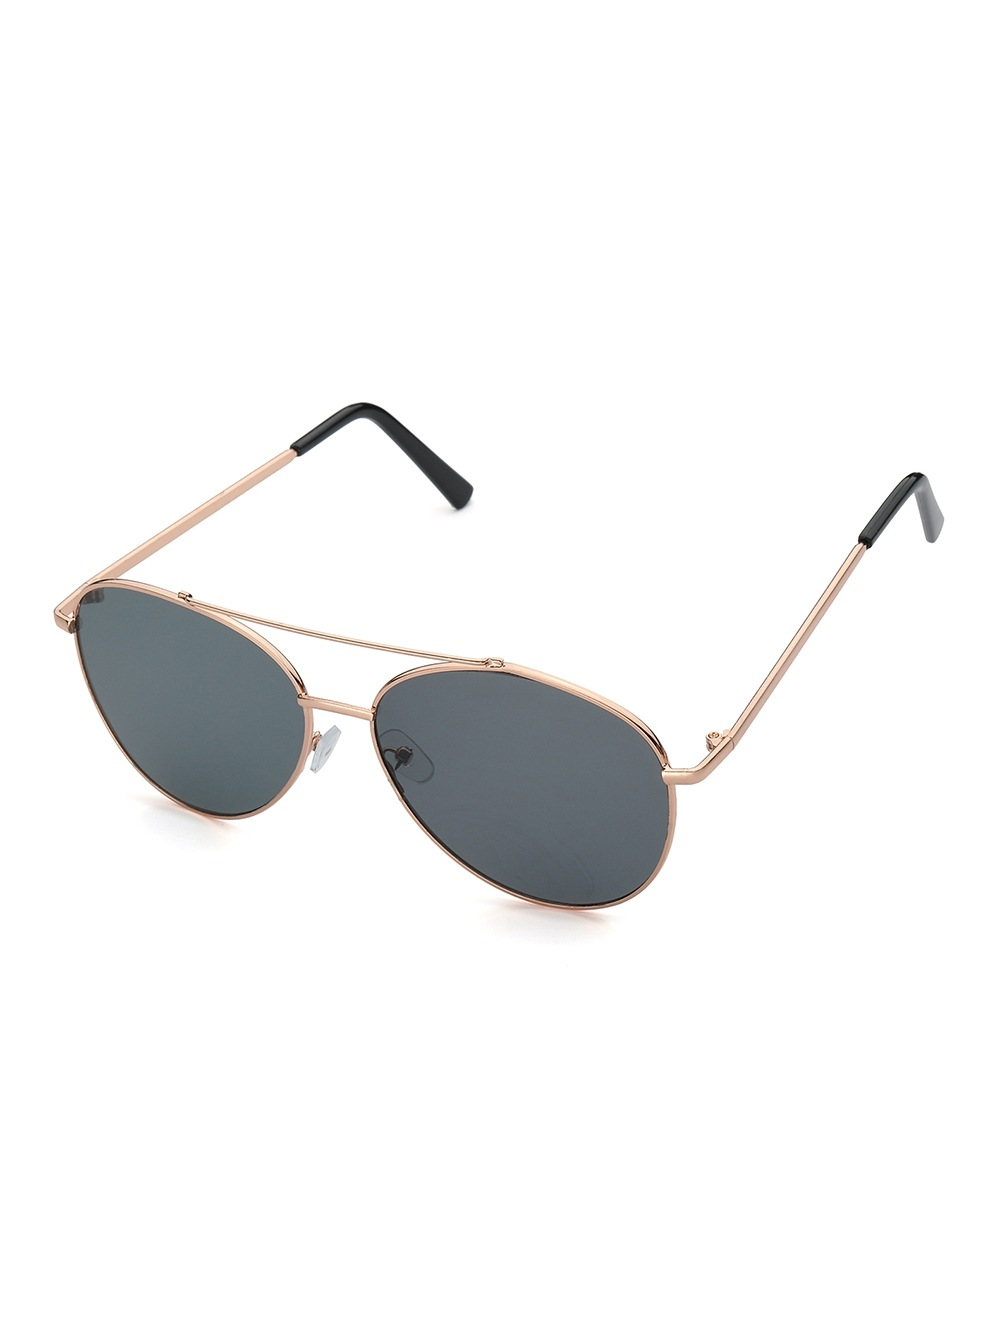 Metal Frame Design Sunglasses